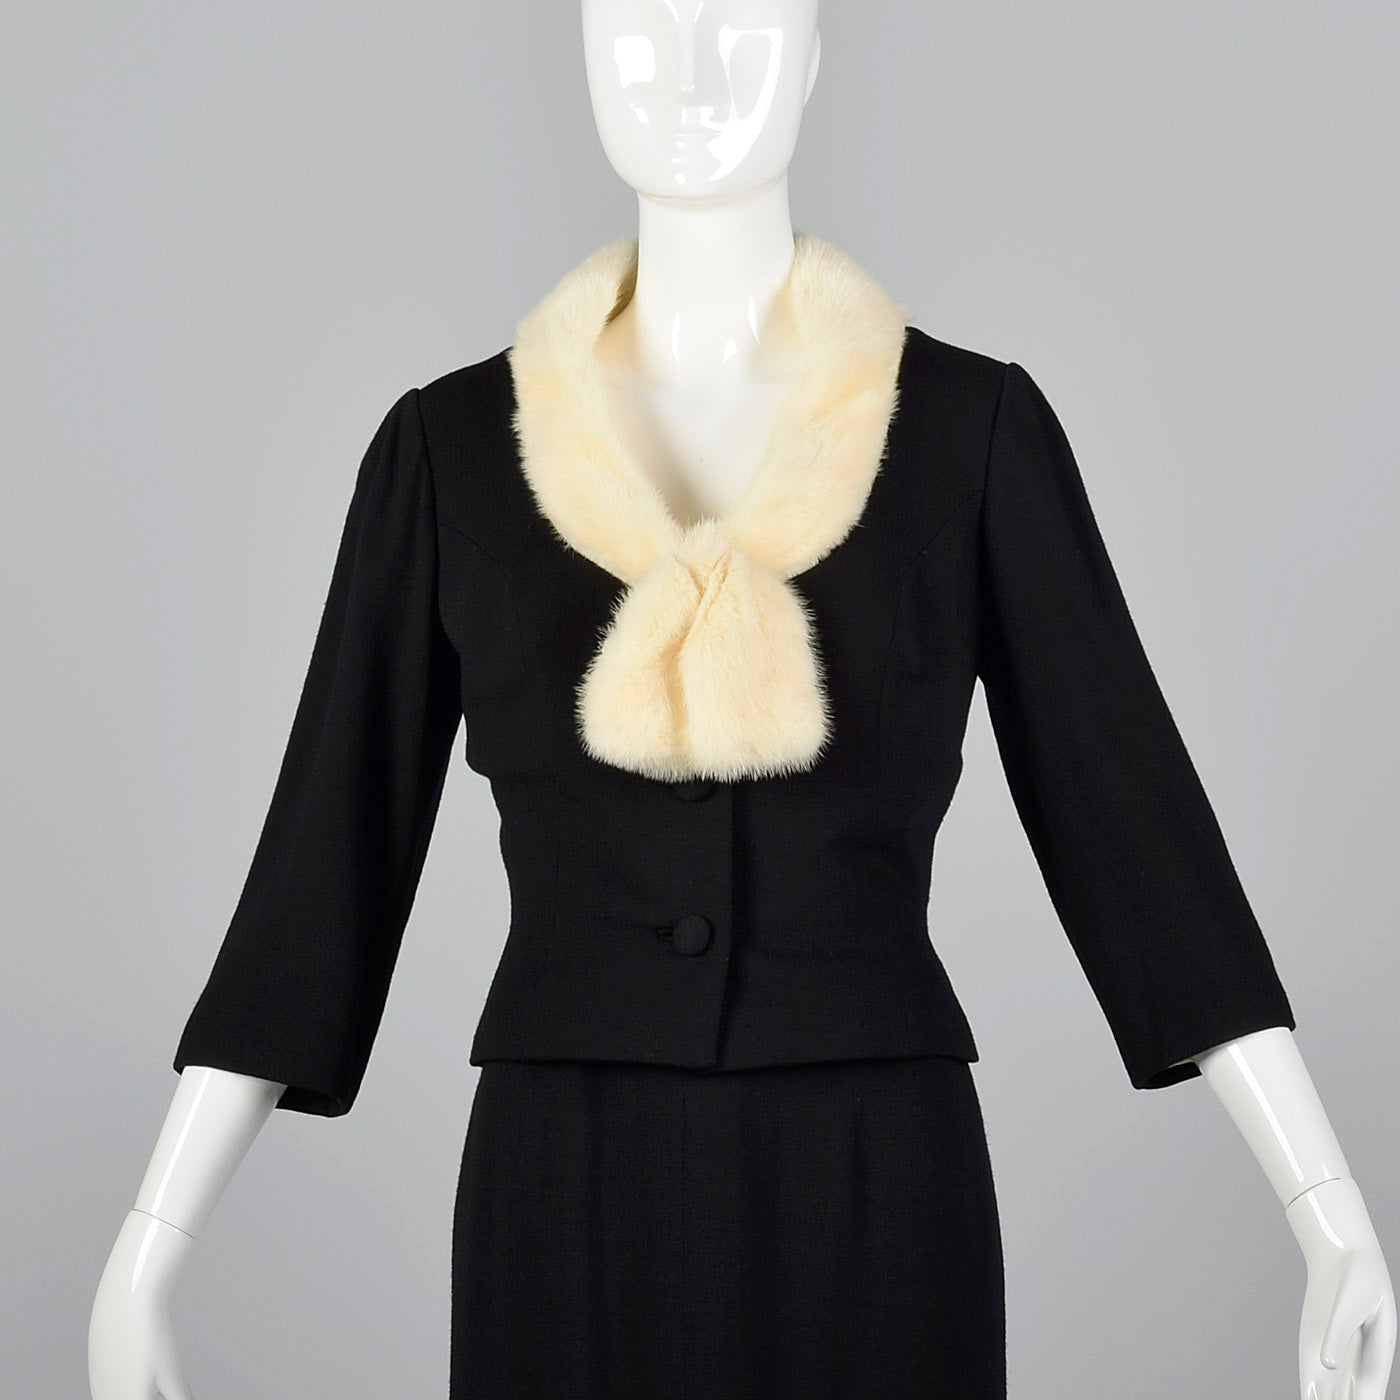 1950s Black Dress with Ermine Fur Collar and Matching Jacket